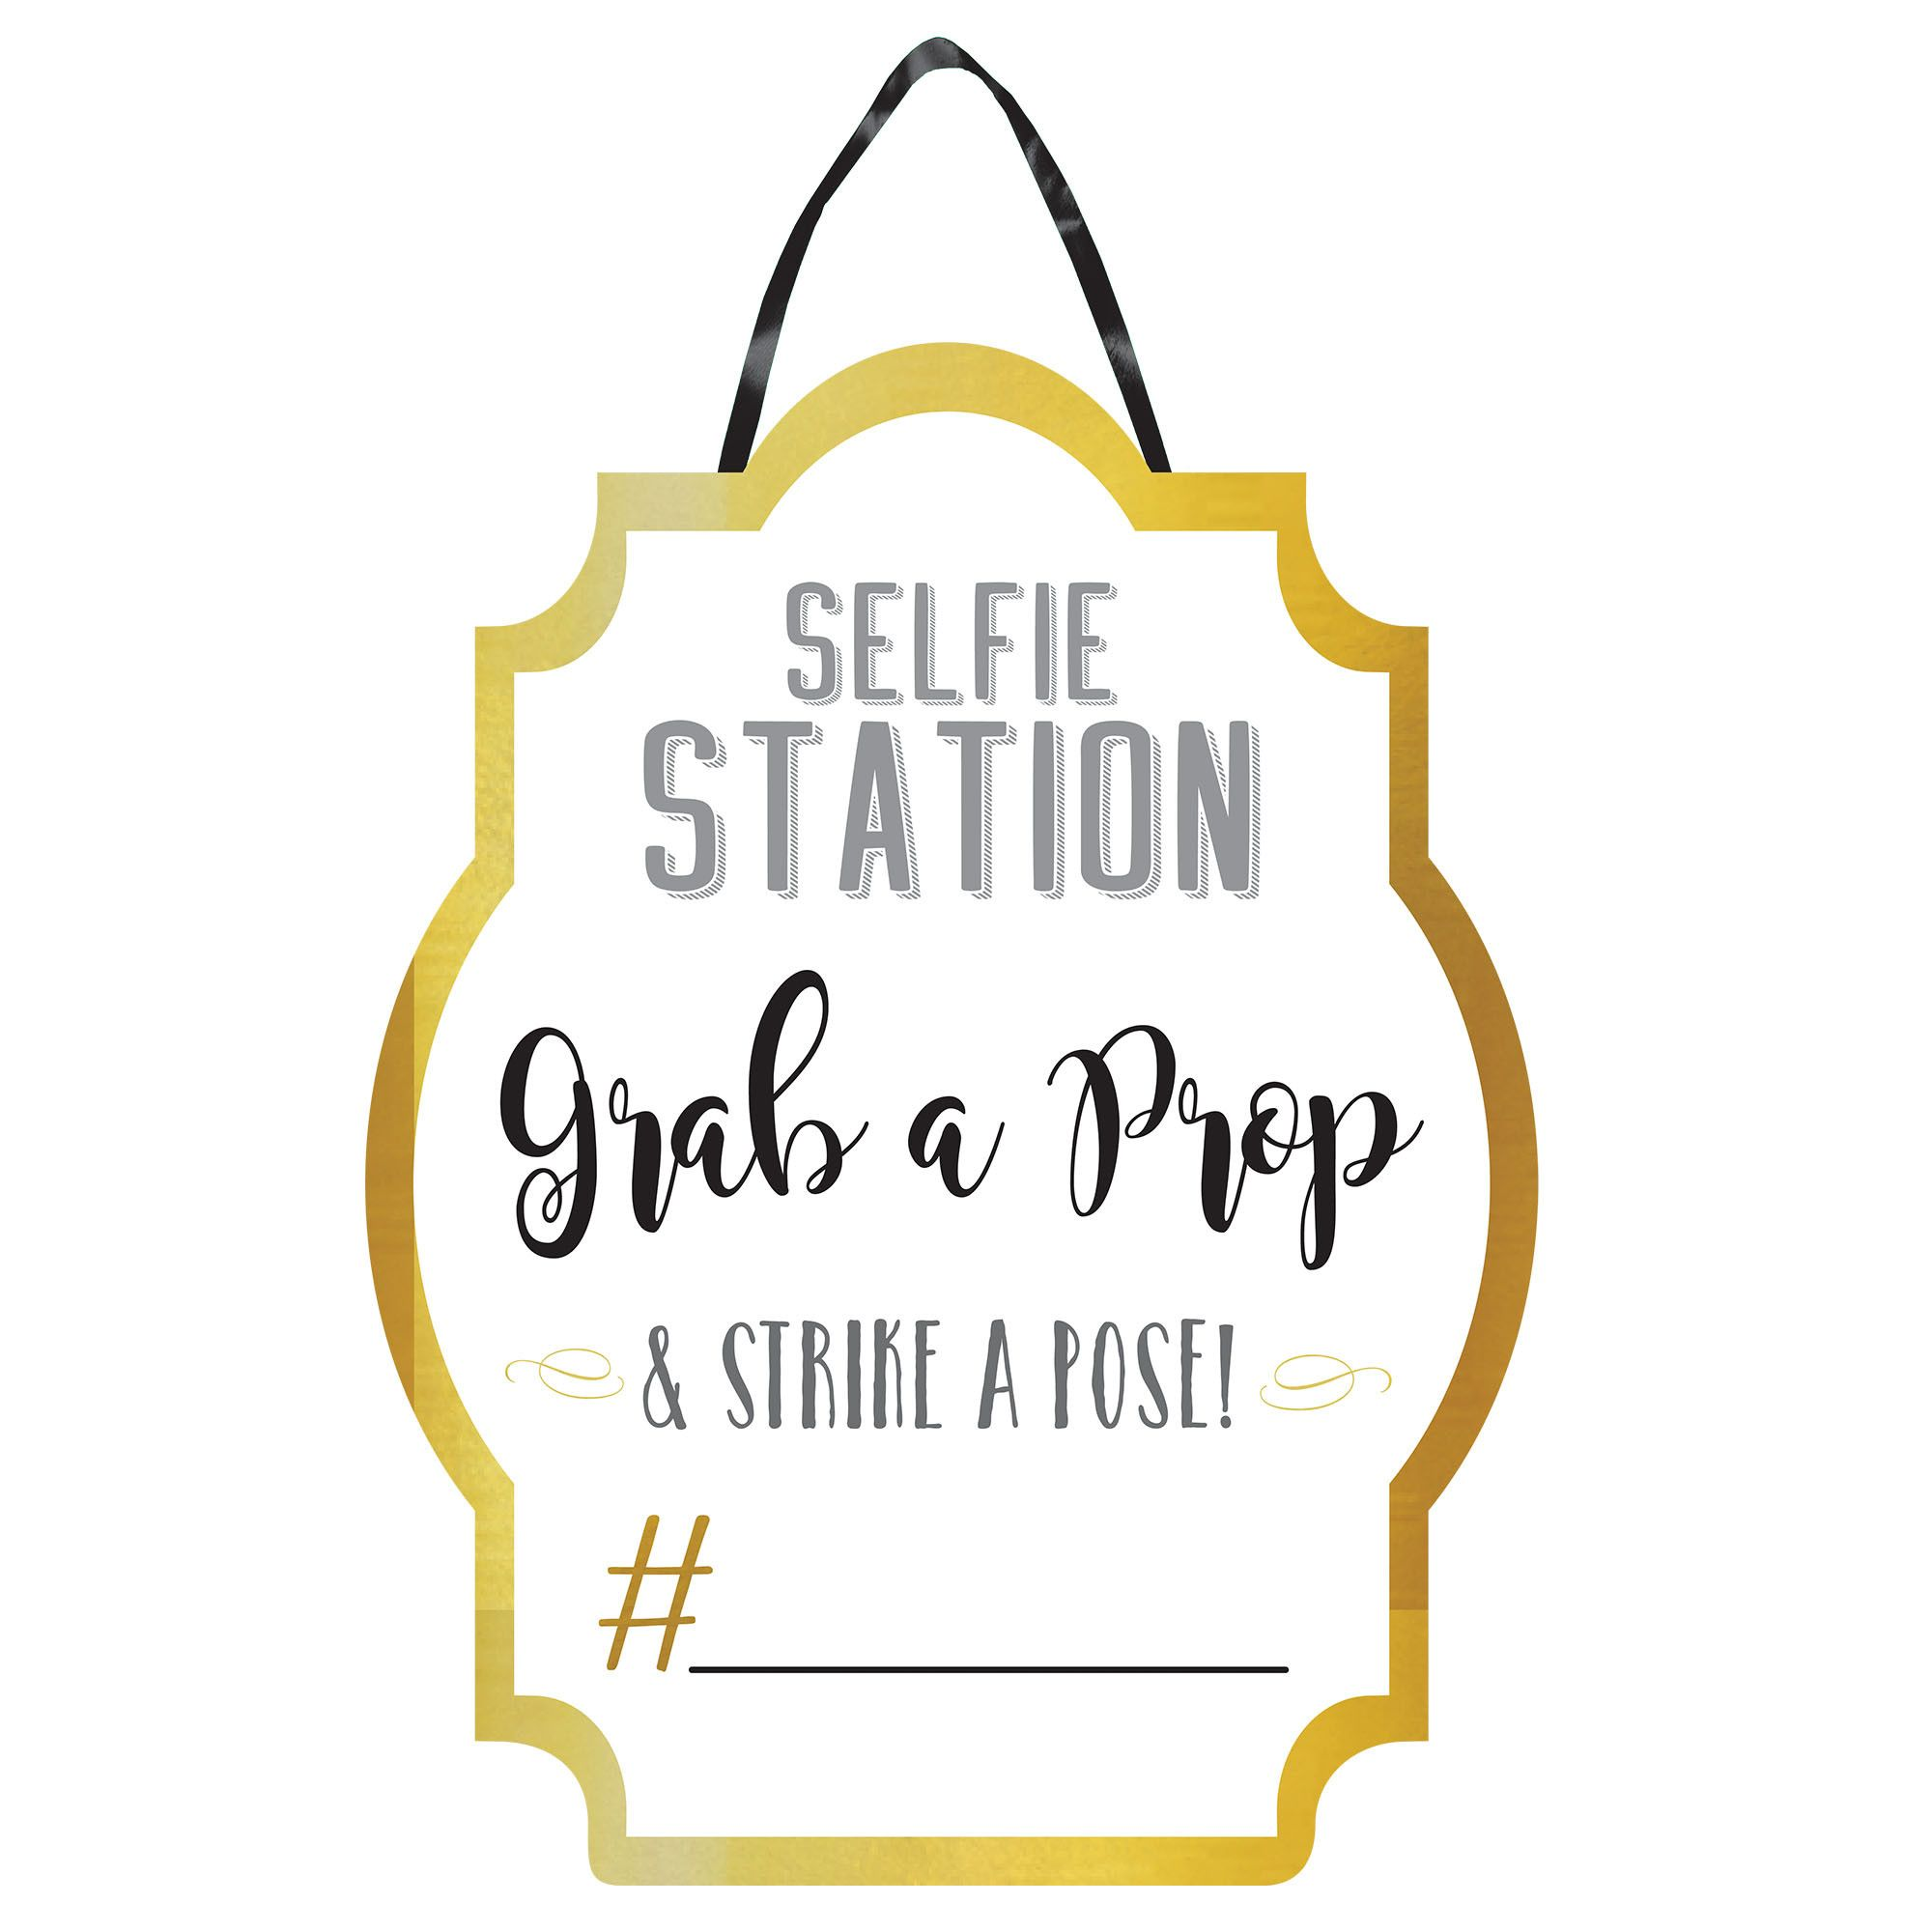 Photo Booth SelfieStation Sign